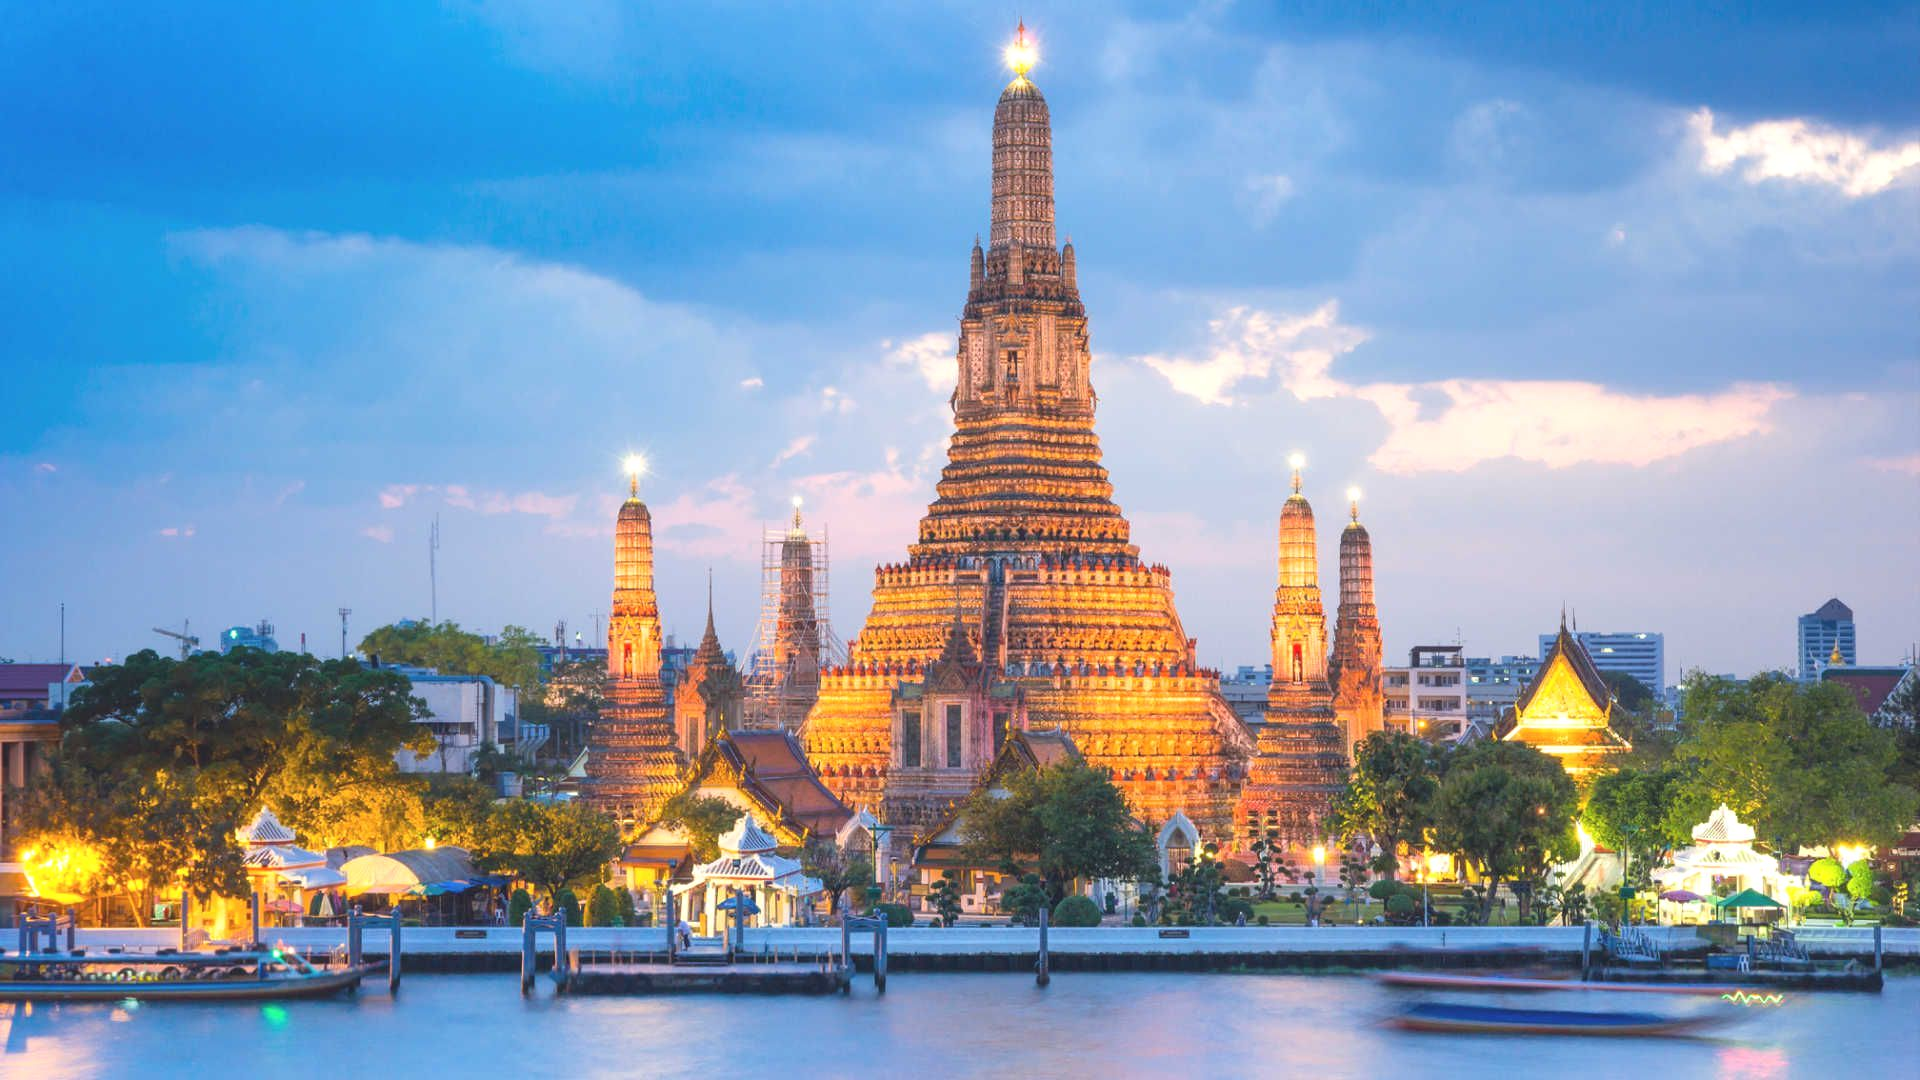 Wat Arun in Thailand is known as the Temple of Dawn and it derives its name from the Hindu god Aruna, personified as the rising sun